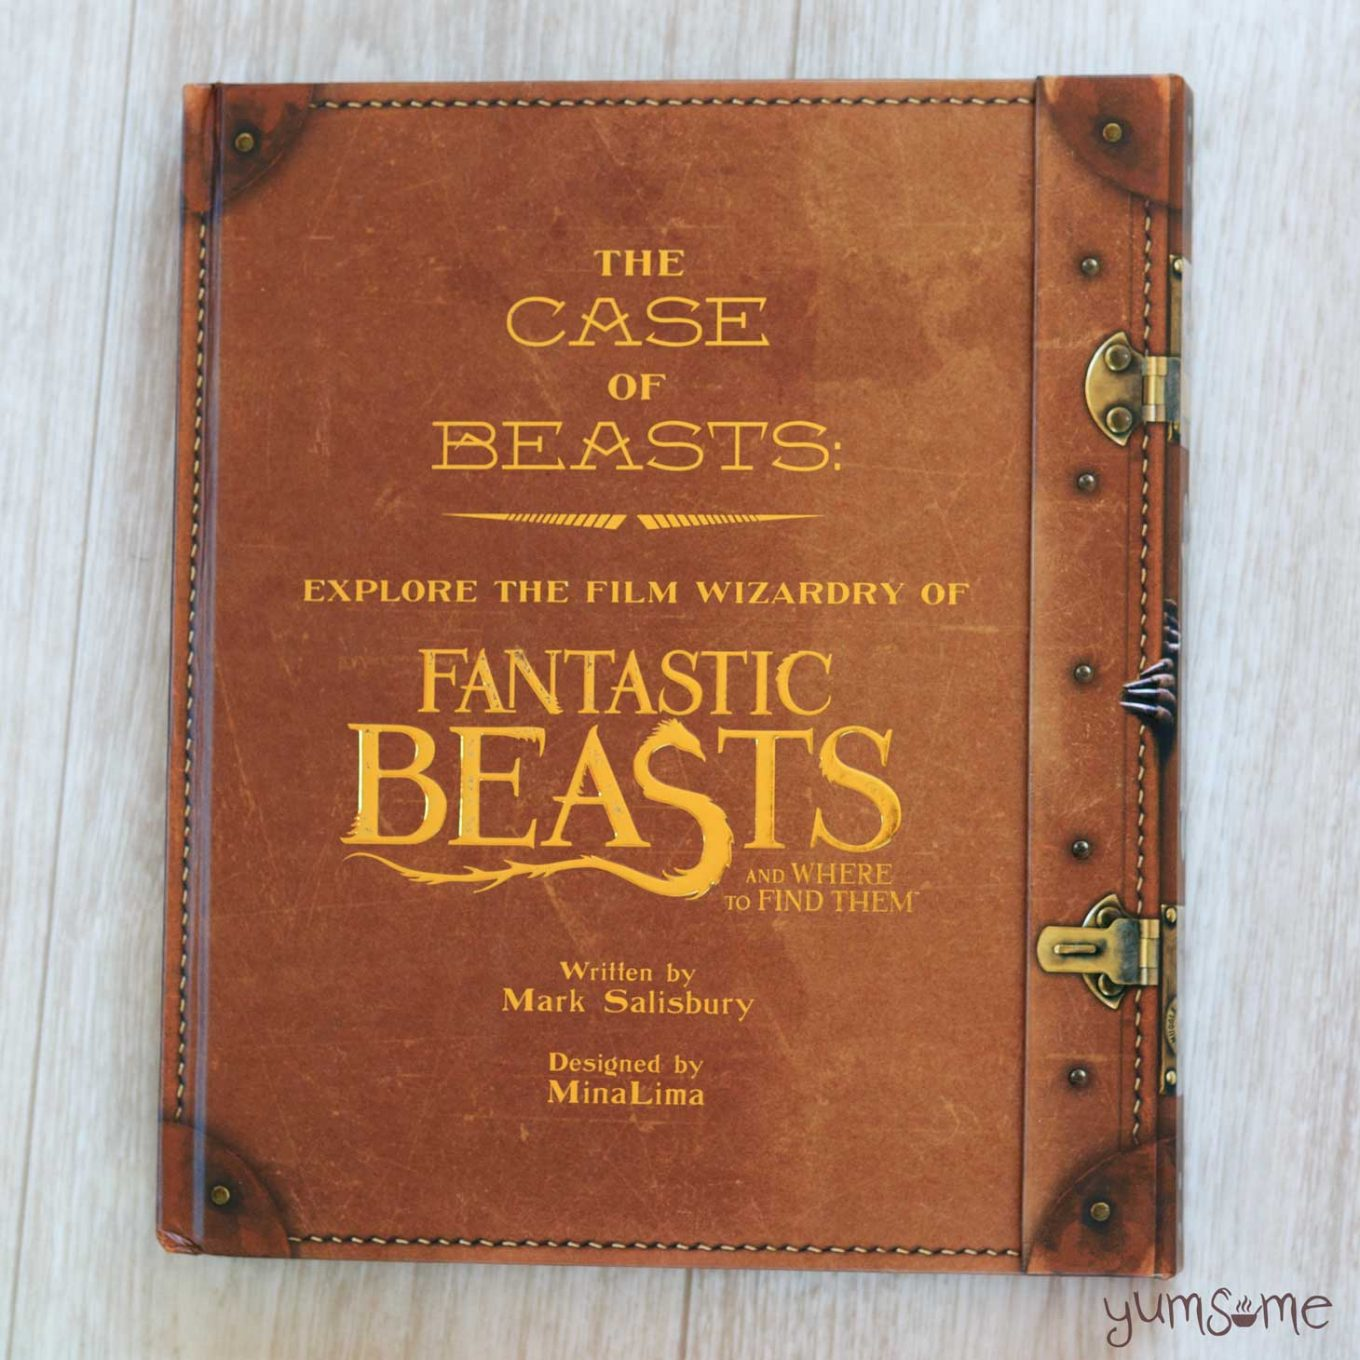 The Case of Beasts | yumsome.com